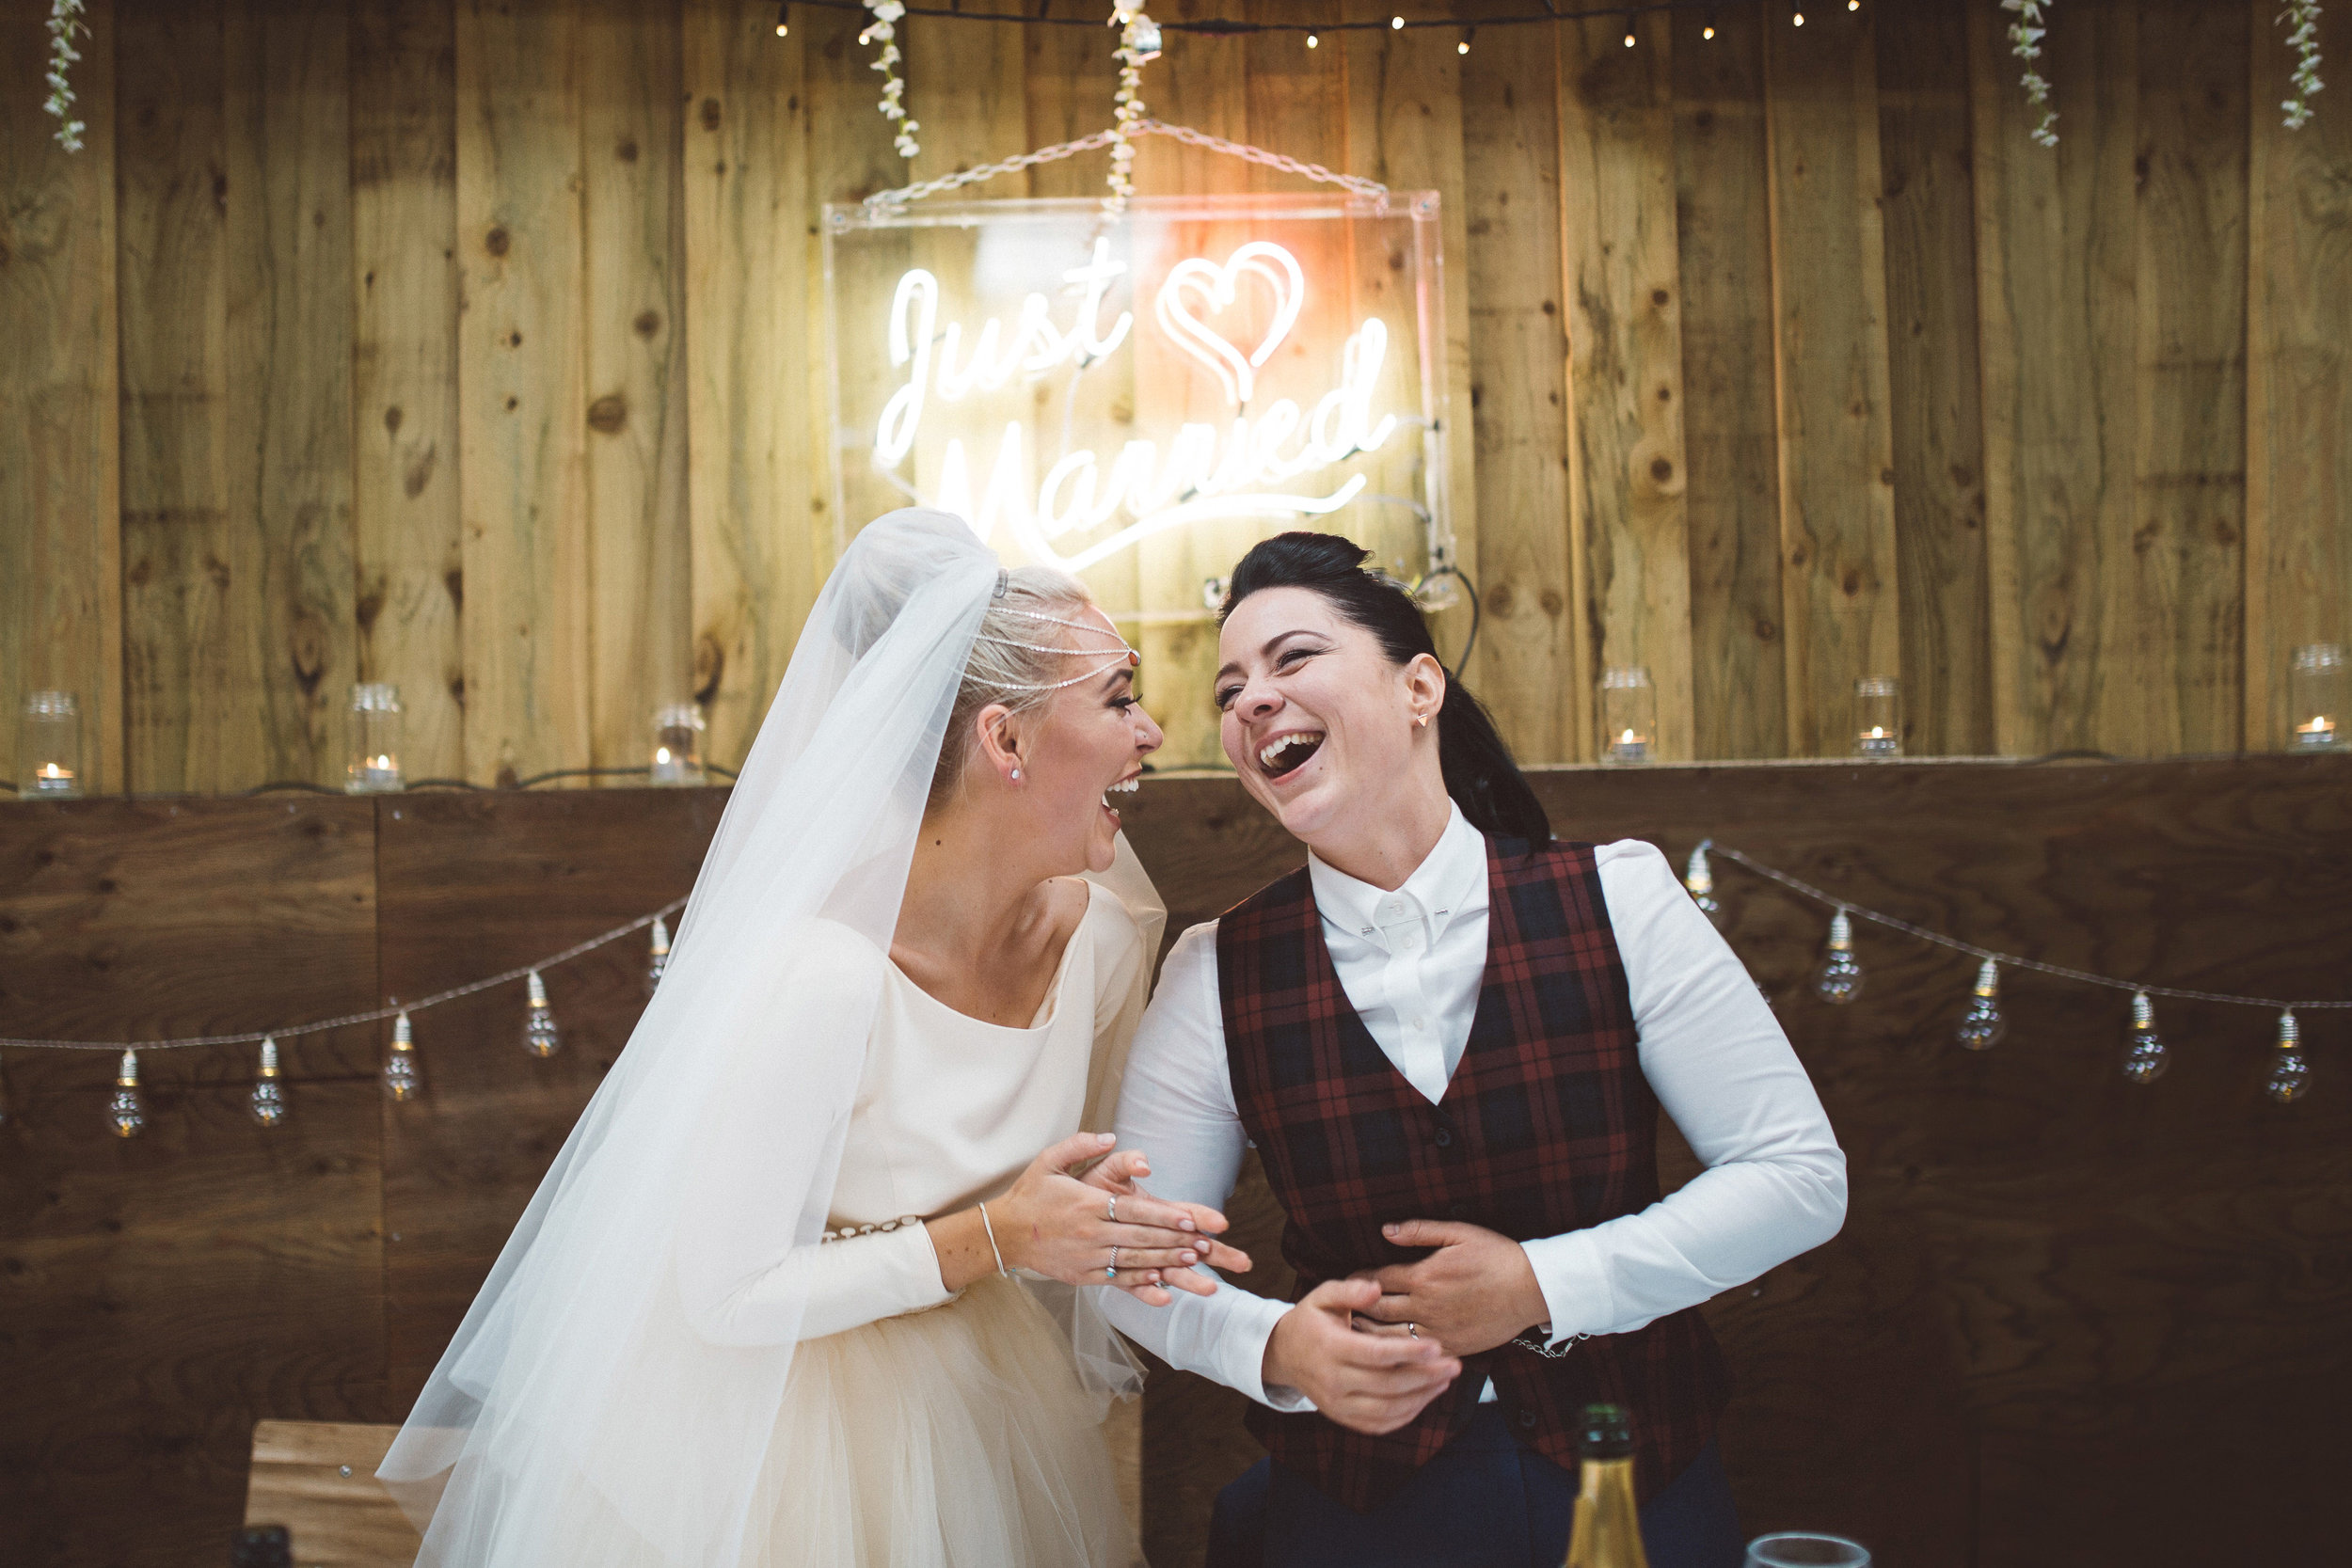 lucy spraggan and her wife laughing during their wedding speeches